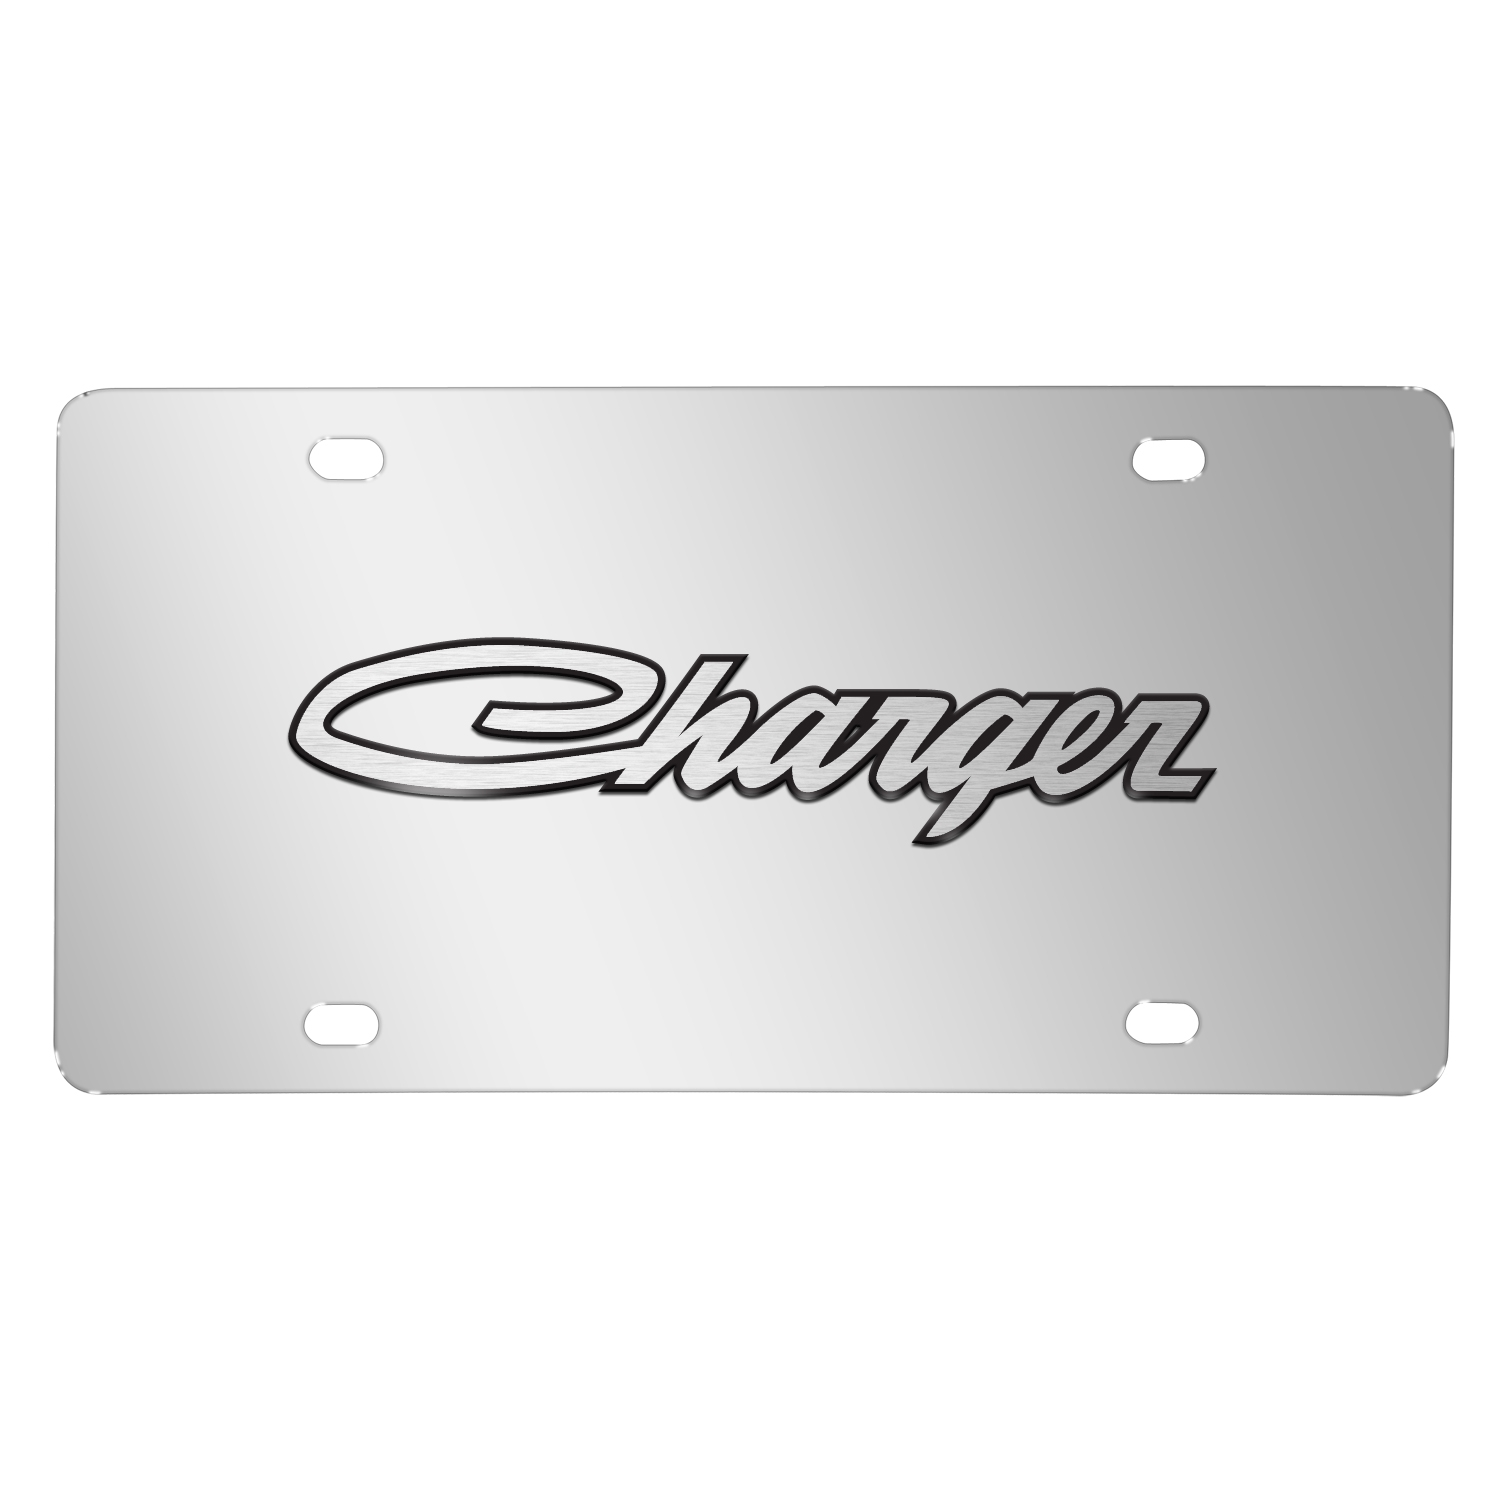 Dodge Charger Classic 3D Logo on Chrome Stainless Steel License Plate